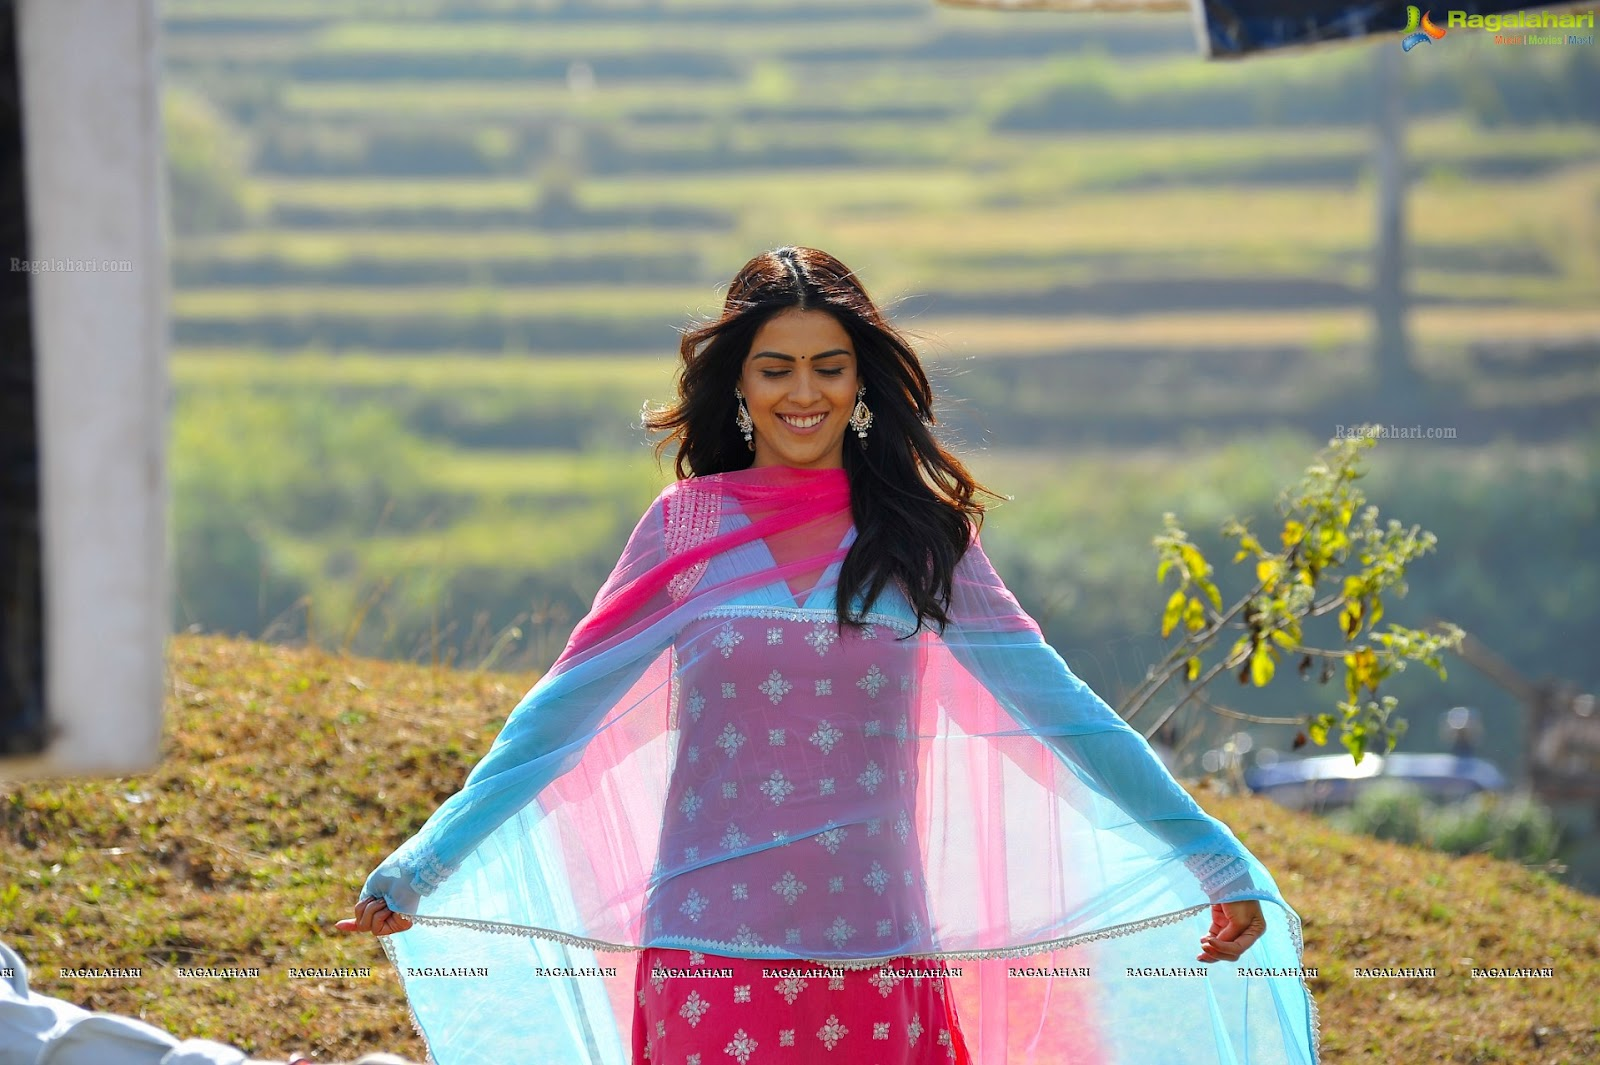 genelia desouza: genelia d'souza hd wallpapers